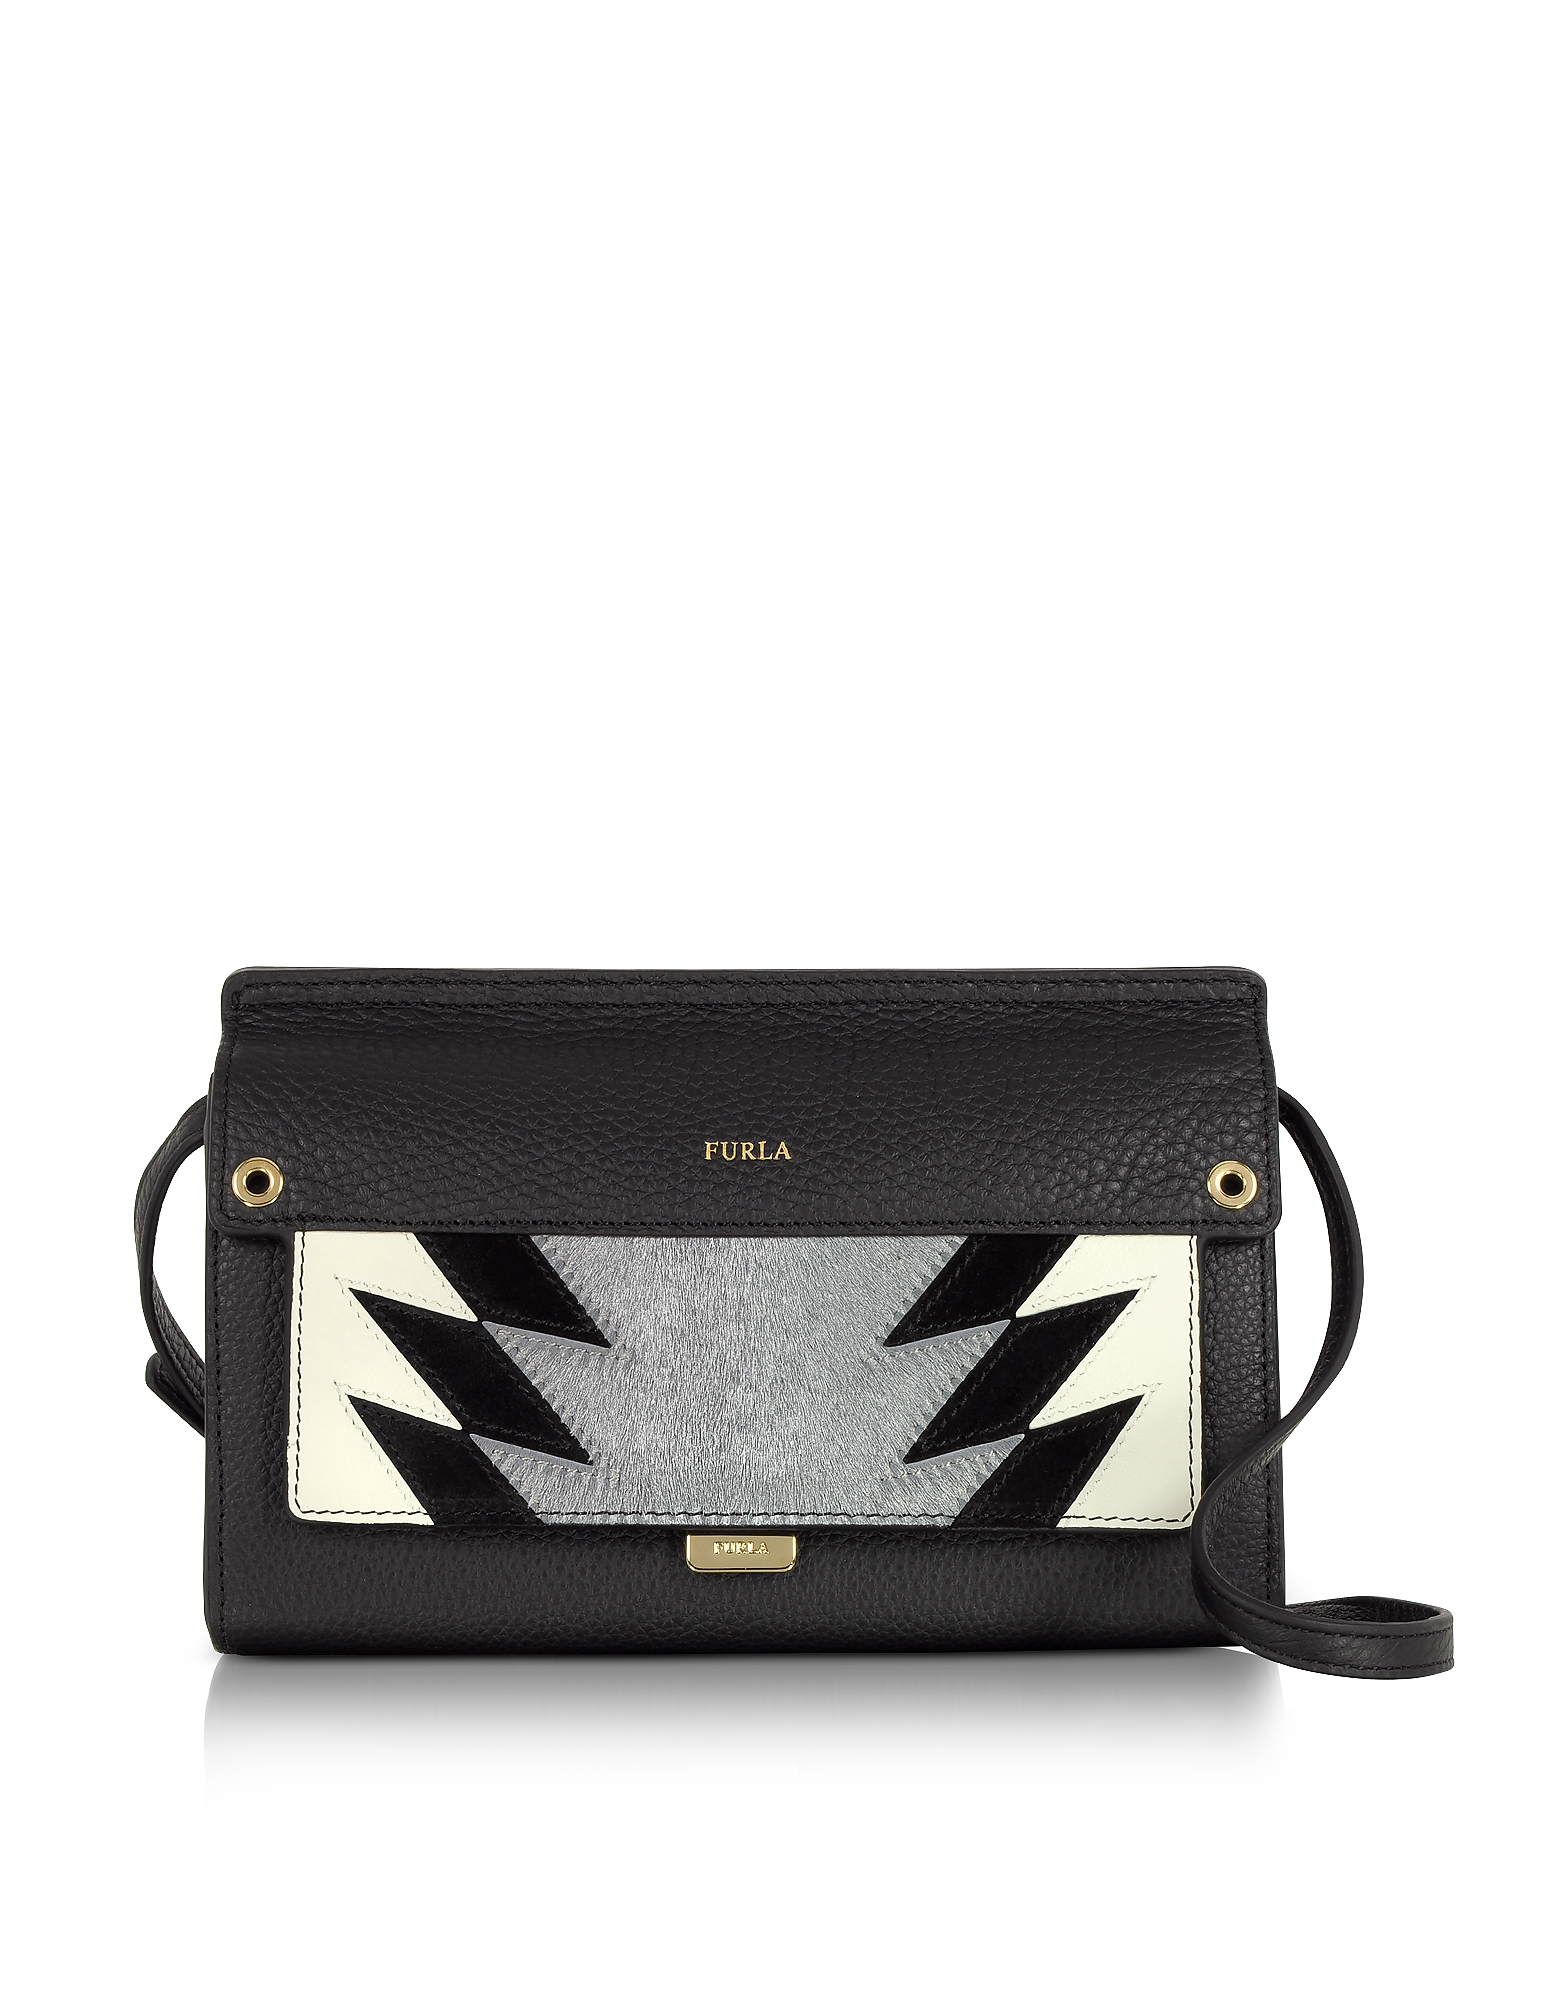 Furla Handbags, Onyx Leather and Silver Haircalf Like Mini Crossbody Bag